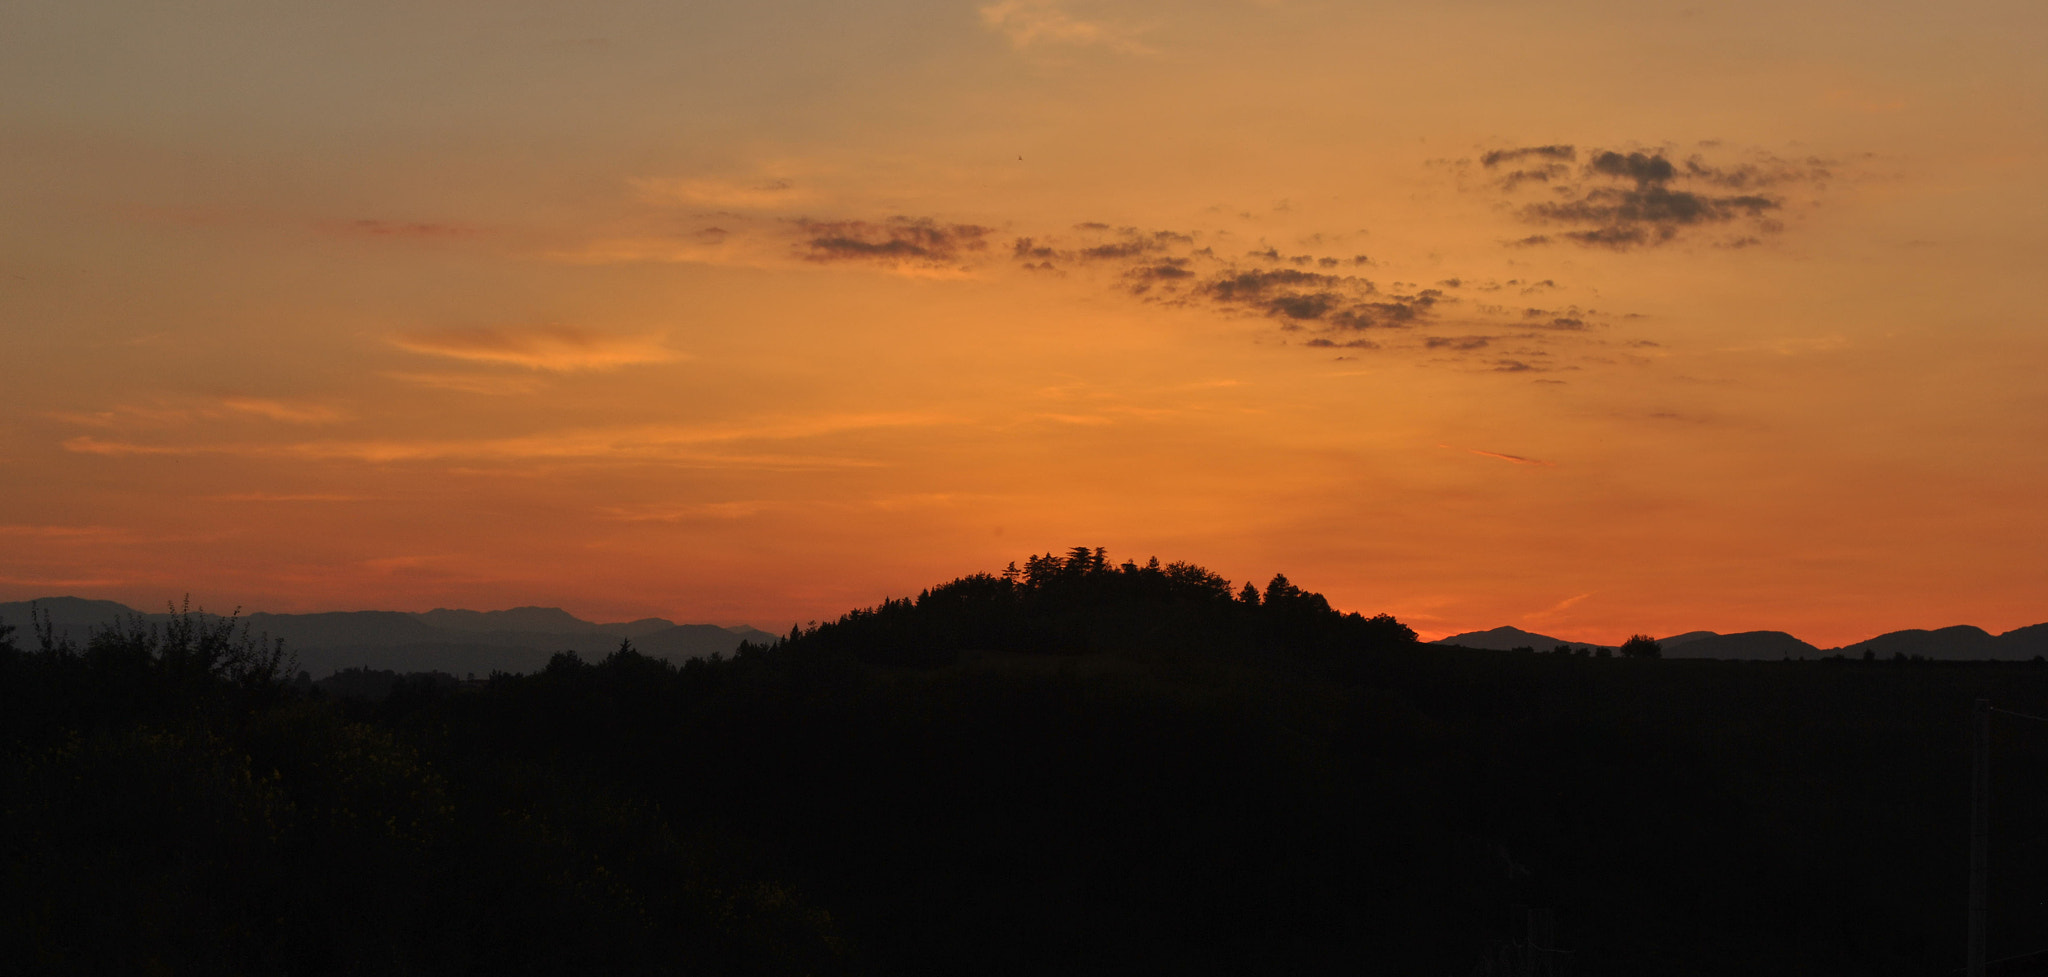 Photograph Sunset of MUGELLO by Andrea Ricci on 500px